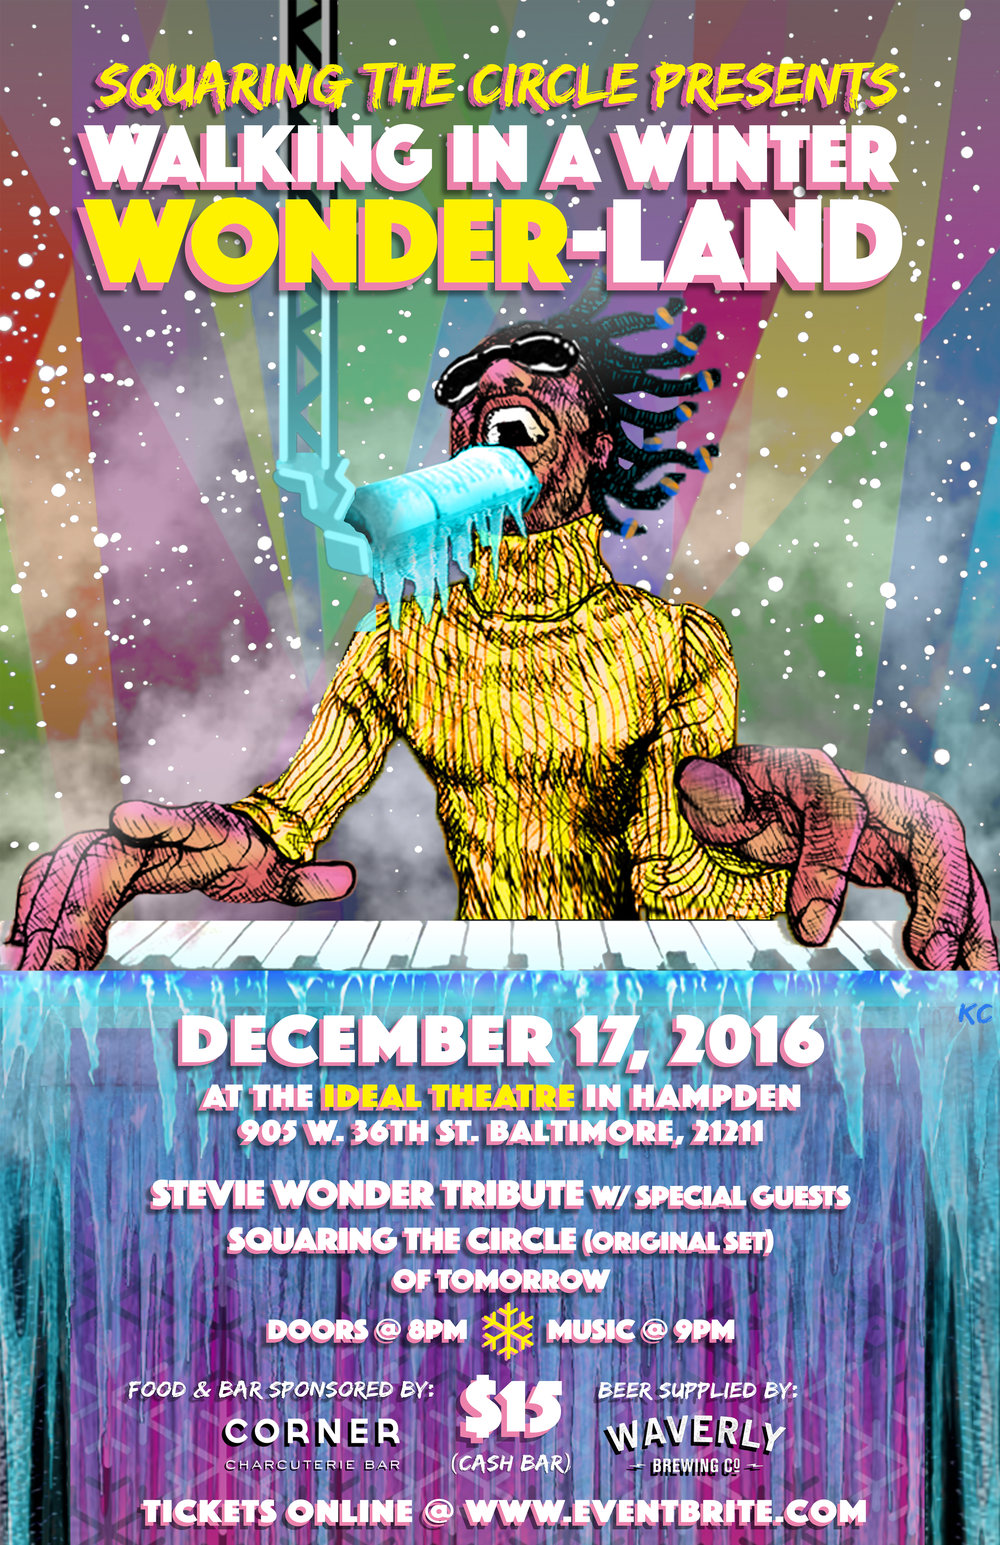 Walking in a Winter WONDERland - Squaring the Circle gig poster